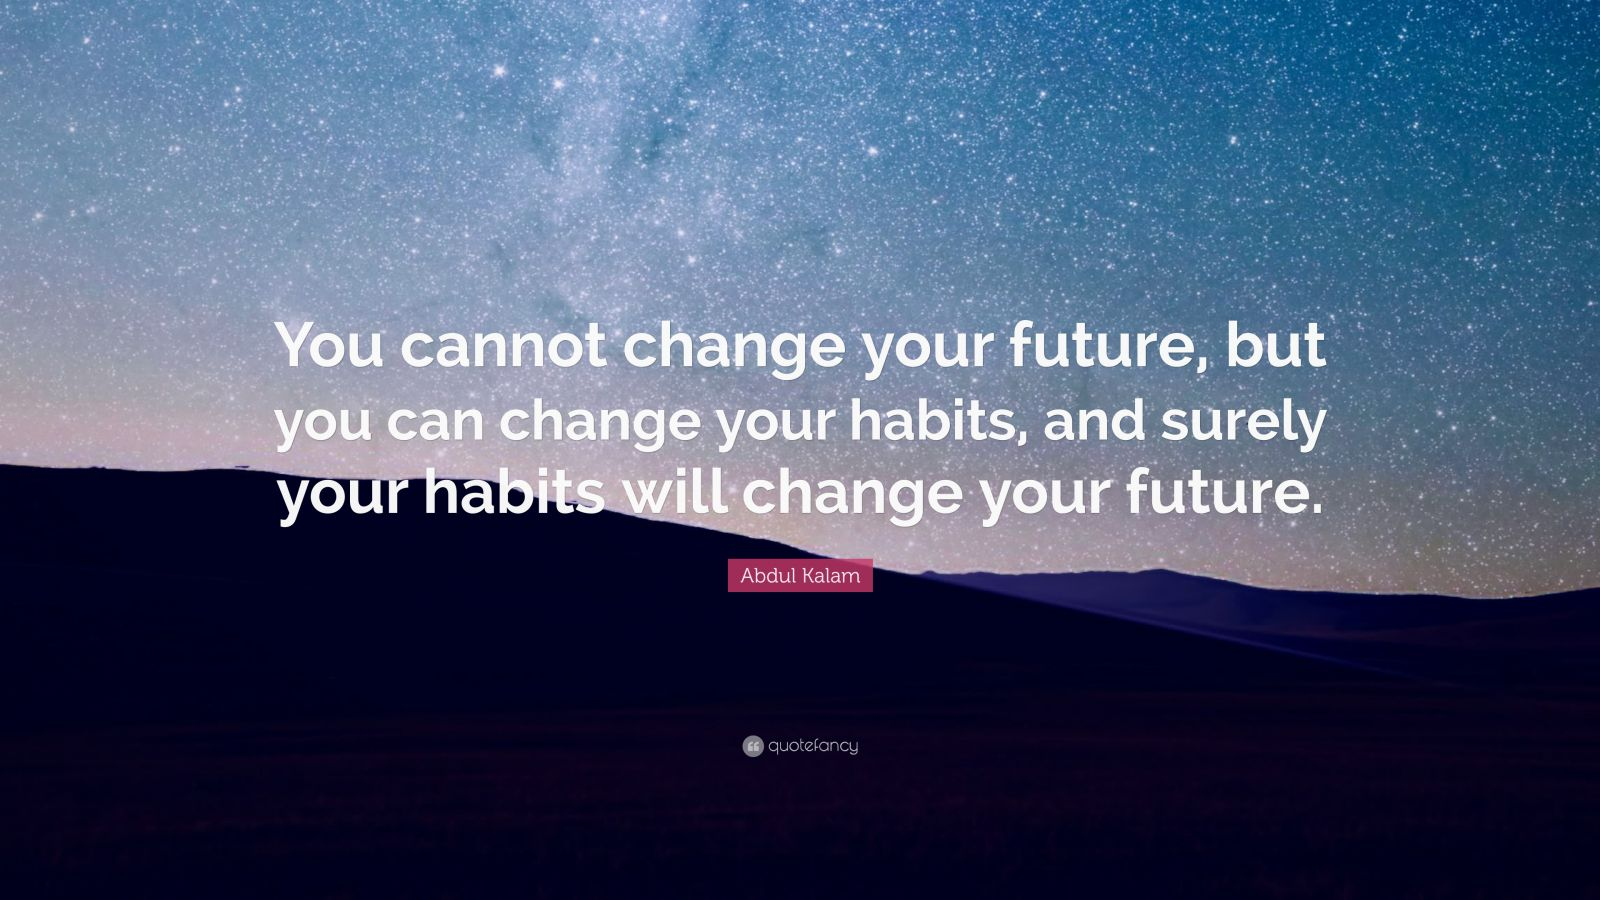 Business Success Quotes Wallpaper Abdul Kalam Quote You Cannot Change Your Future But You